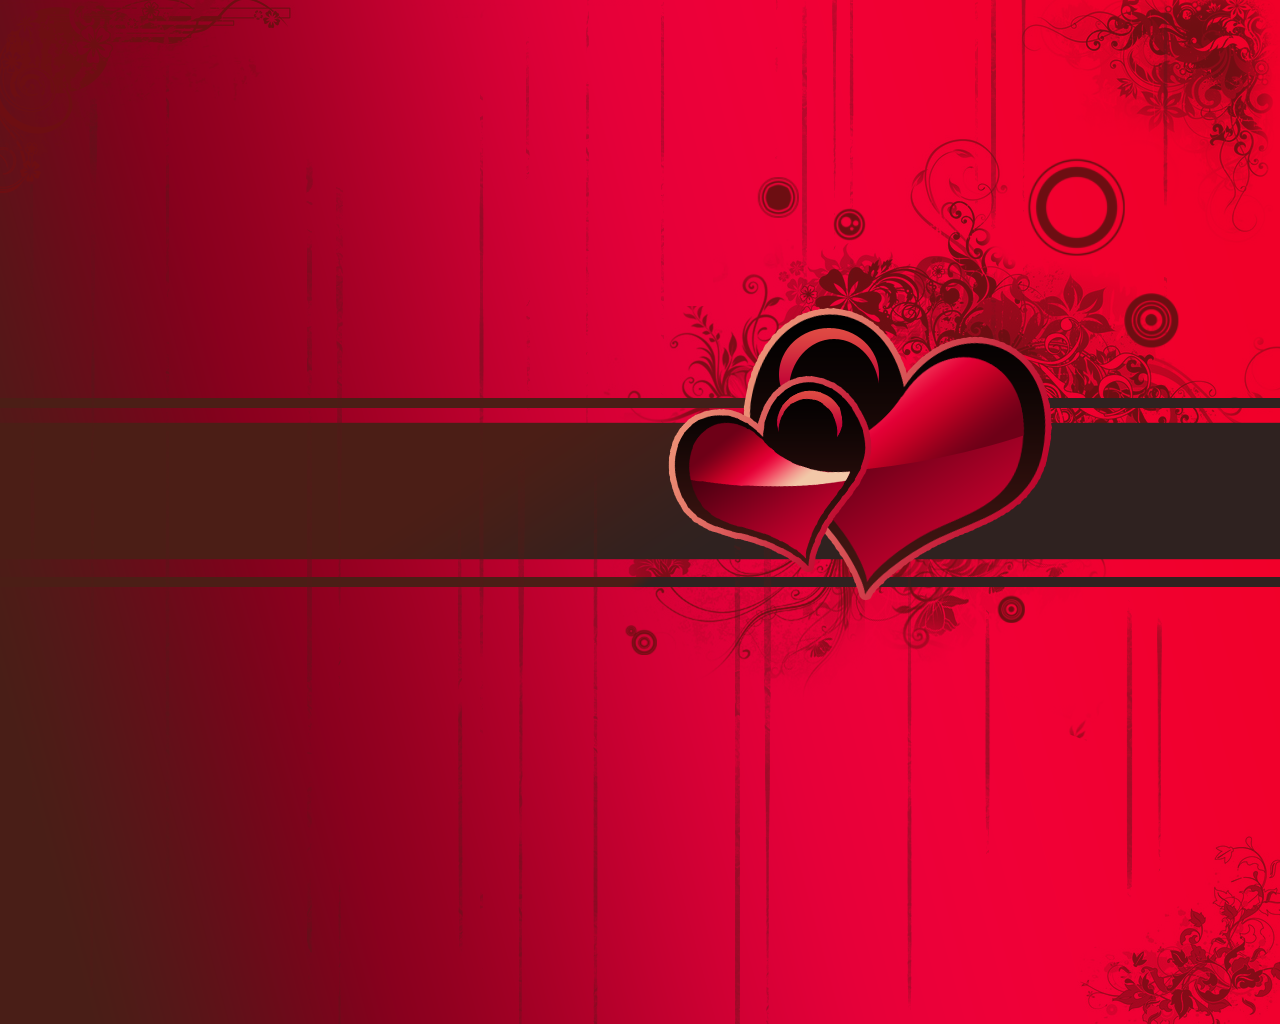 30 Heart Inspired Wallpapers for Valentines   blueblotscom 1280x1024